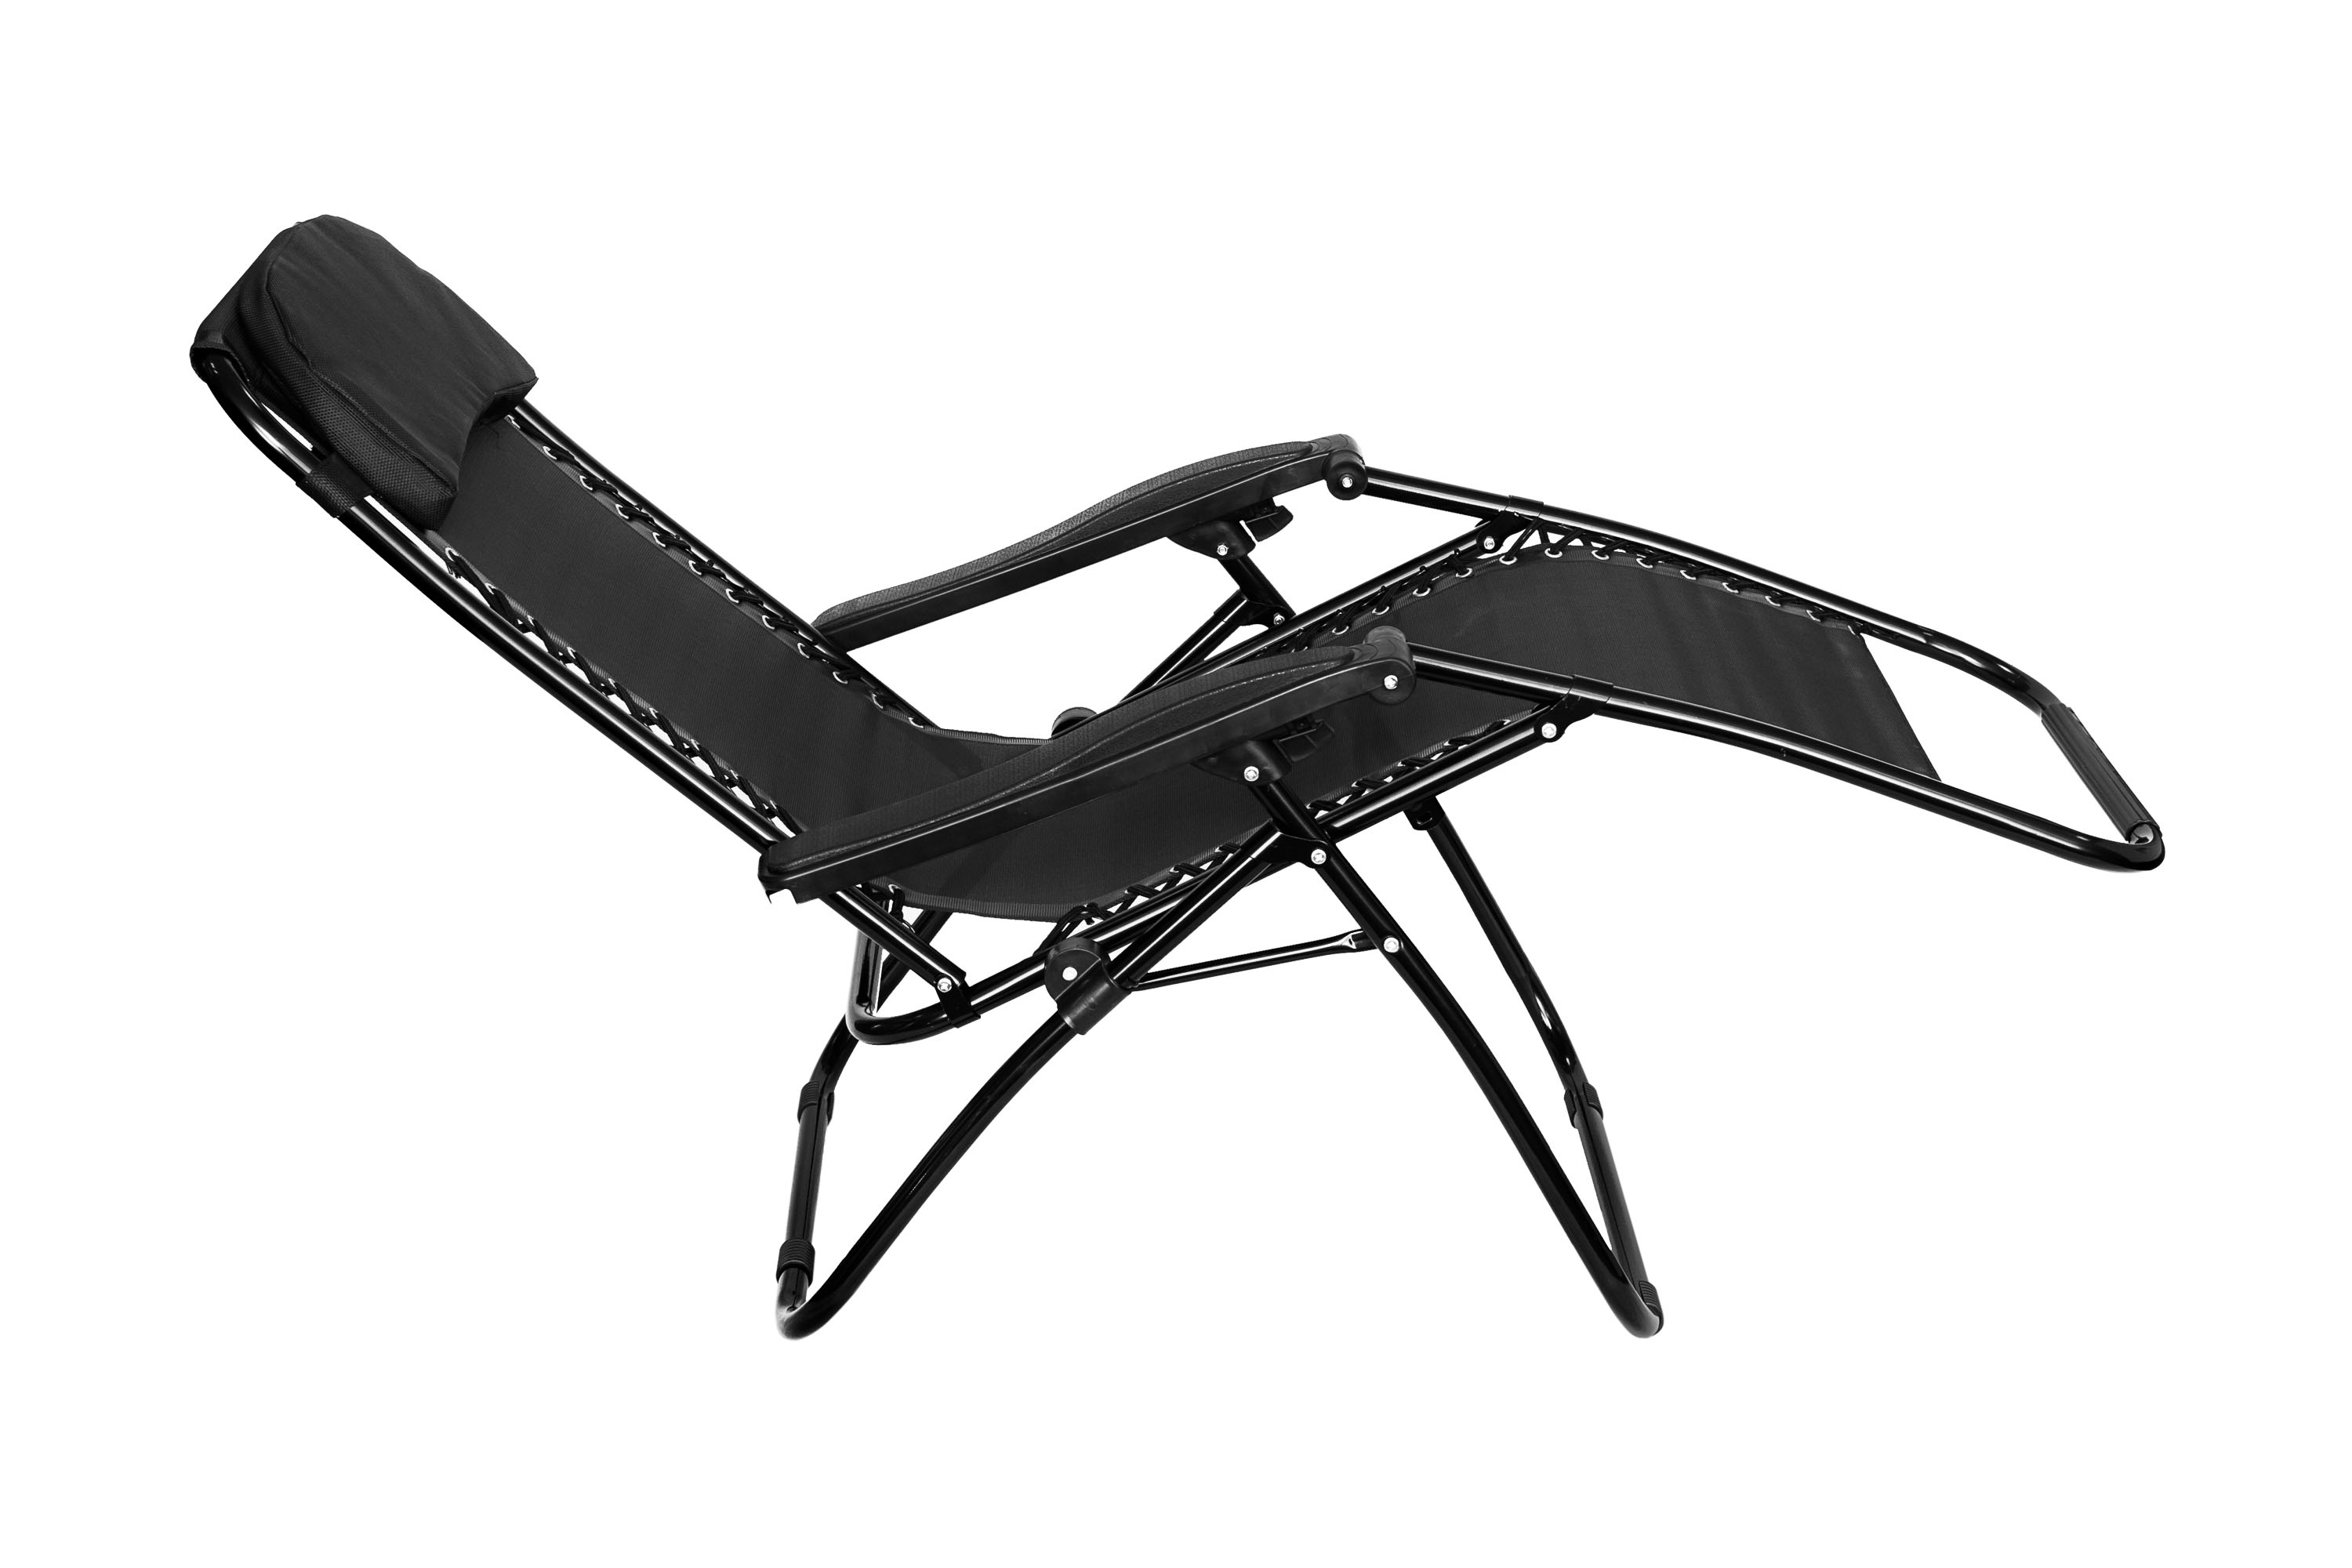 FOLDING GRAVITY SUN LOUNGER CHAIR RECLINER GARDEN SUN DECK BED RECLINING  OUTDOOR